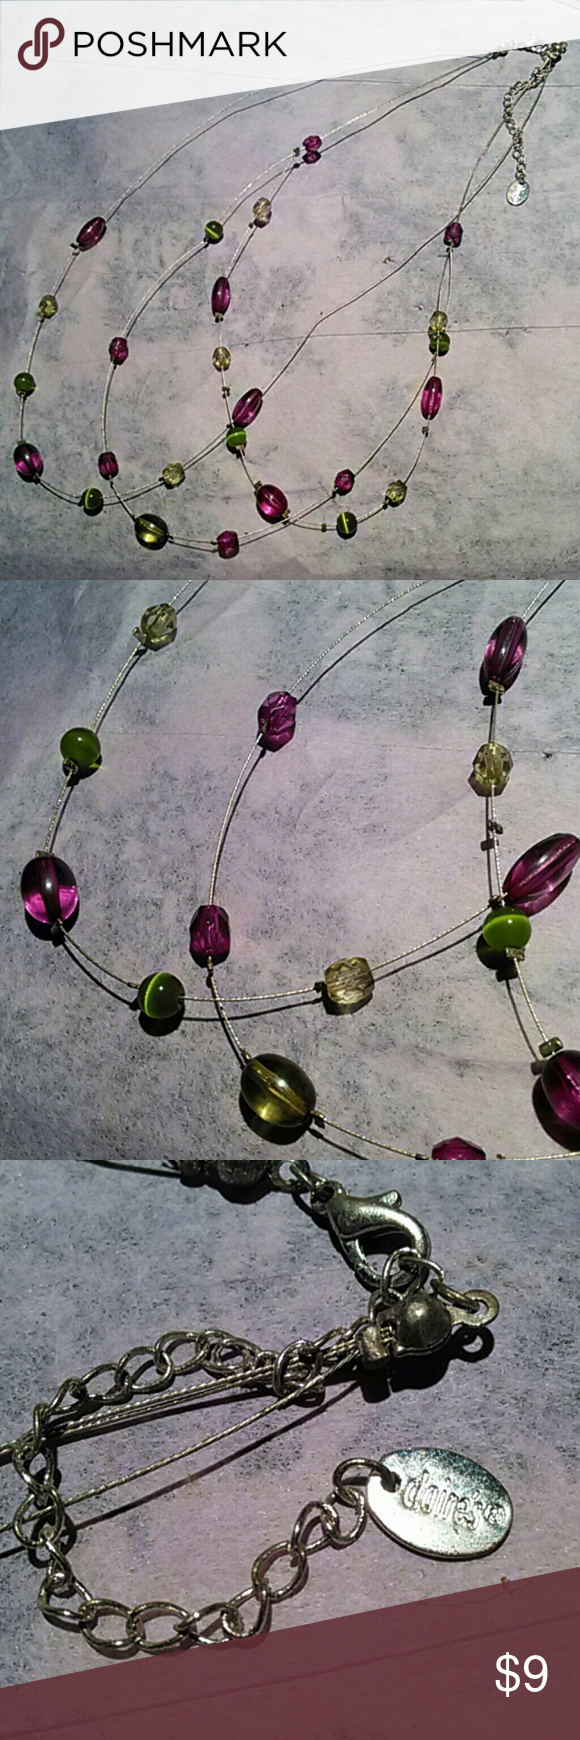 Claire's necklace Green cat's eye and purple beads. 18 Inches long' Claire's Jewelry Necklaces